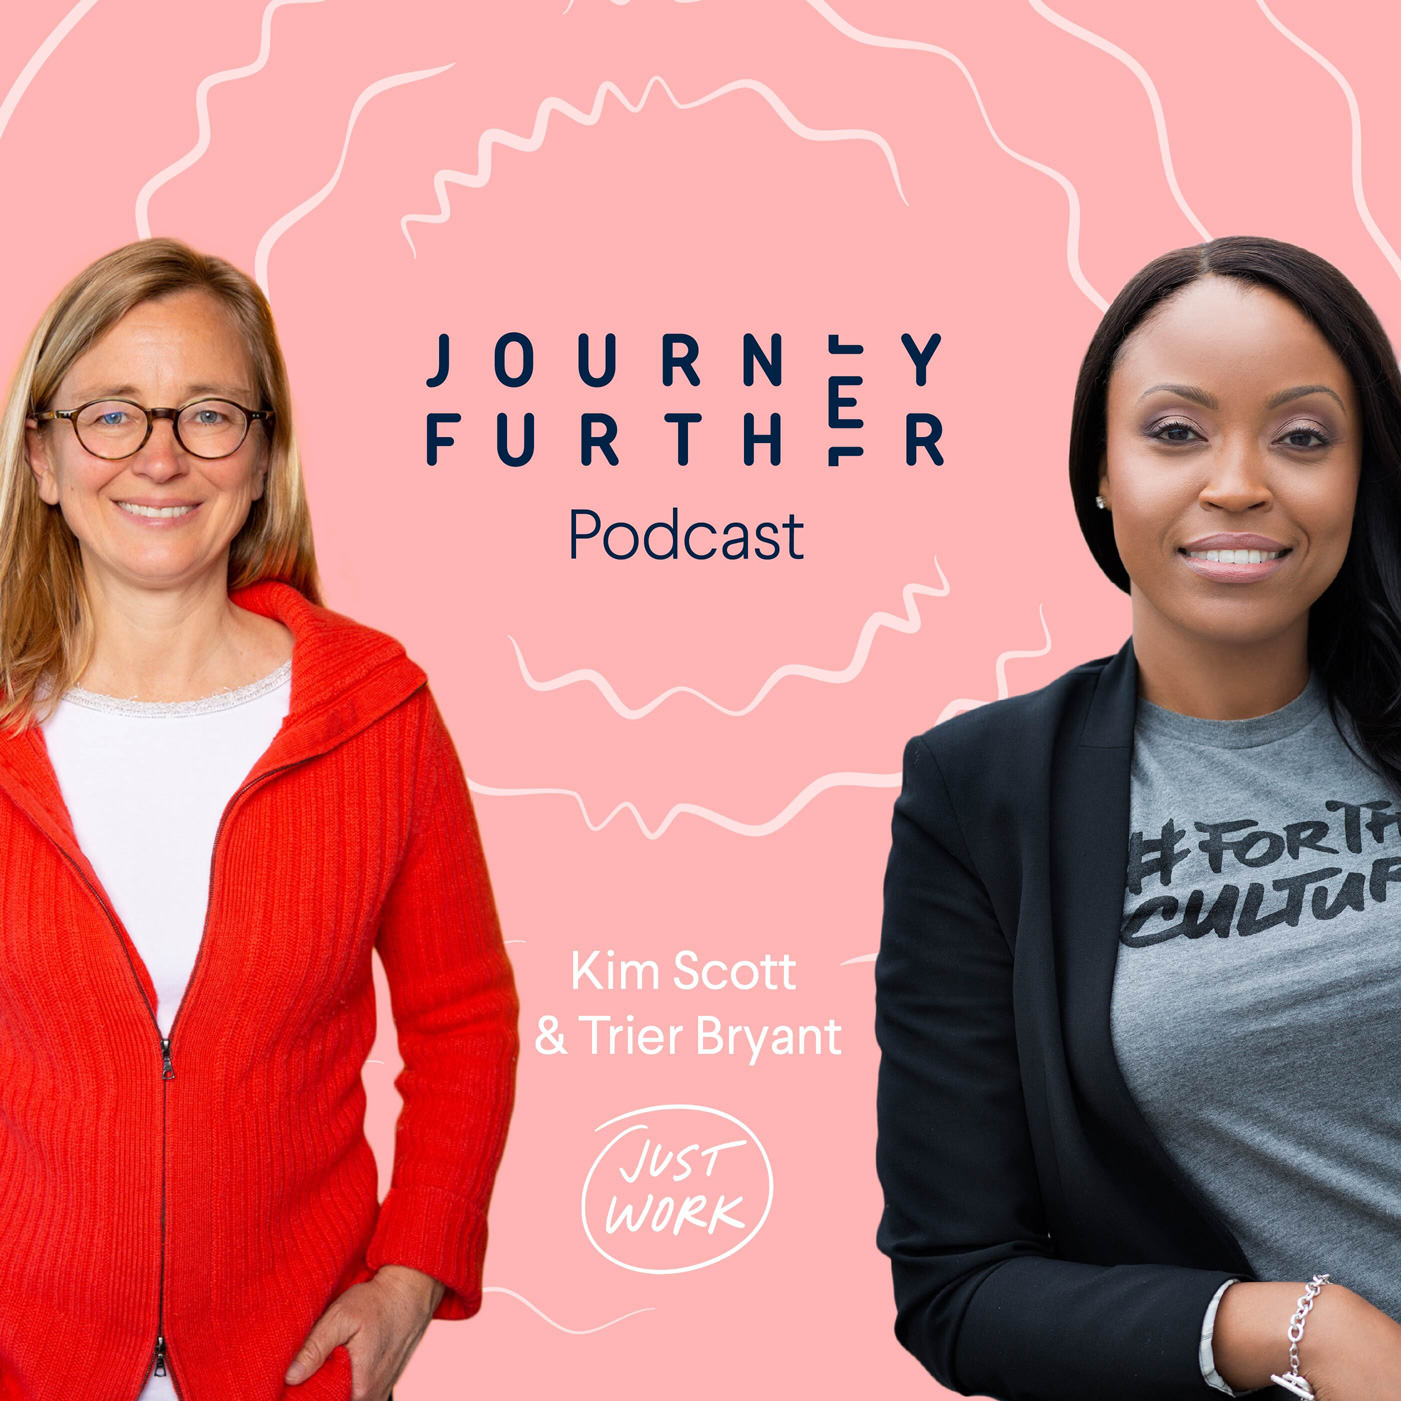 Just Work; Tackling Workplace Injustice with Kim Scott & Trier Bryant